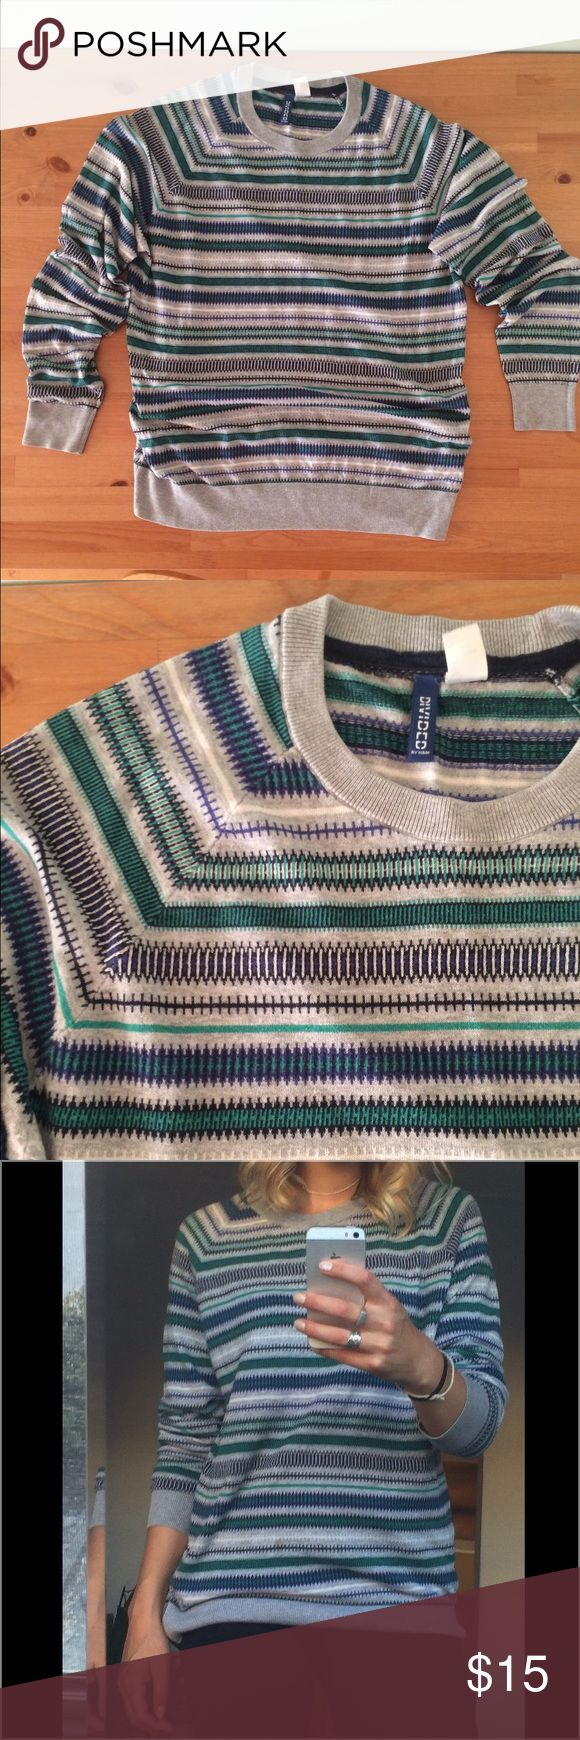 H&M Men Striped Crew Neck Sweater Super comfy and cool sweater by H&M Men. 55% Cotton / 45% Acrylic. Good Condition. H&M Sweaters Crew & Scoop Necks